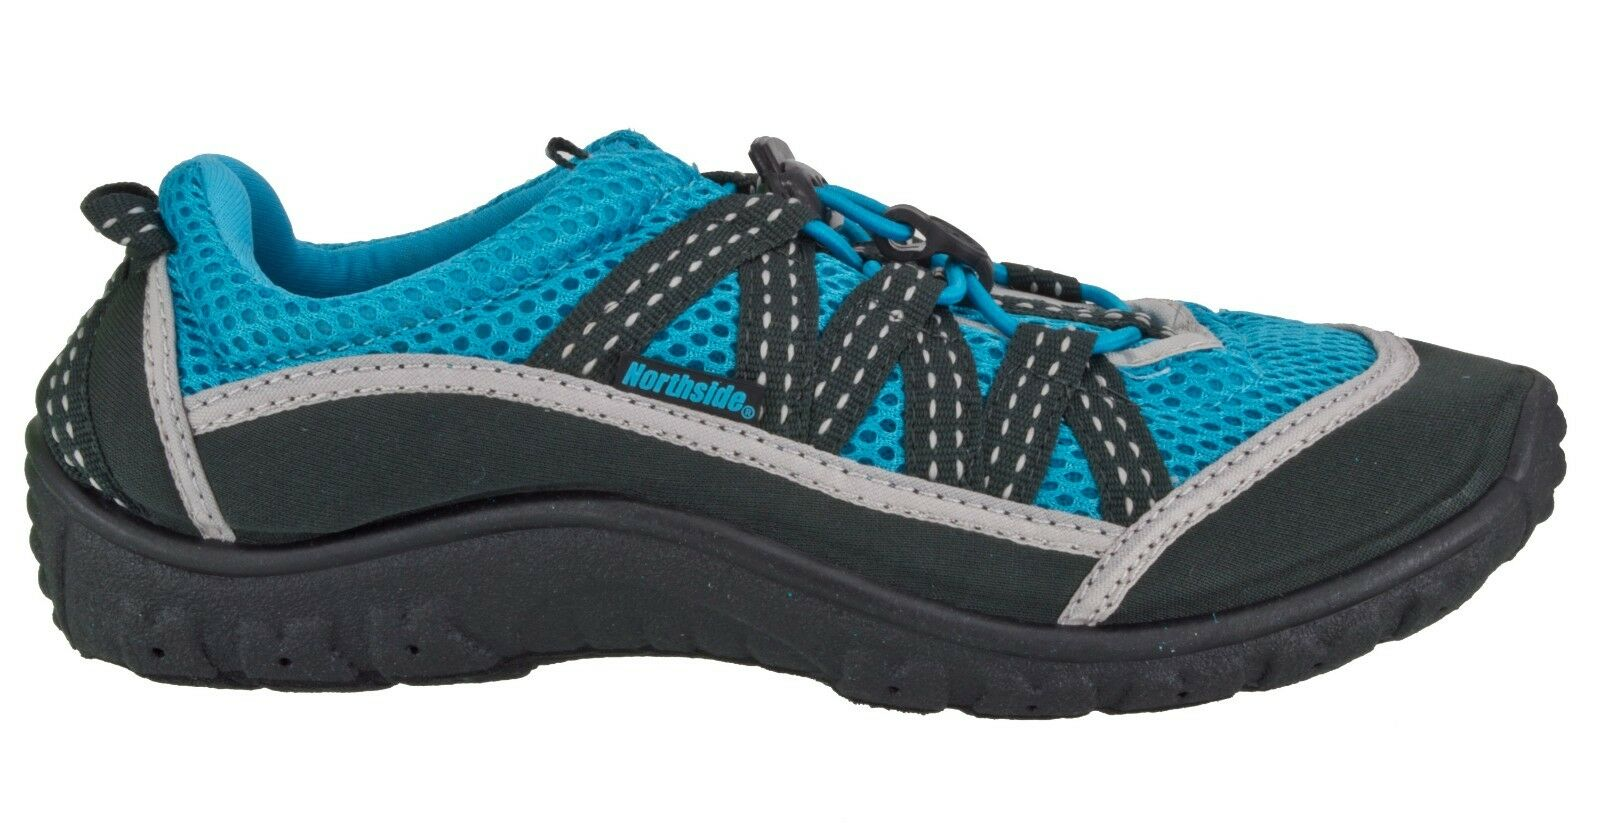 NORTHSIDE 412203K KIDS BOYS NEW BRILLE II MESH SPORT WATER SHOE AQUA SOCK